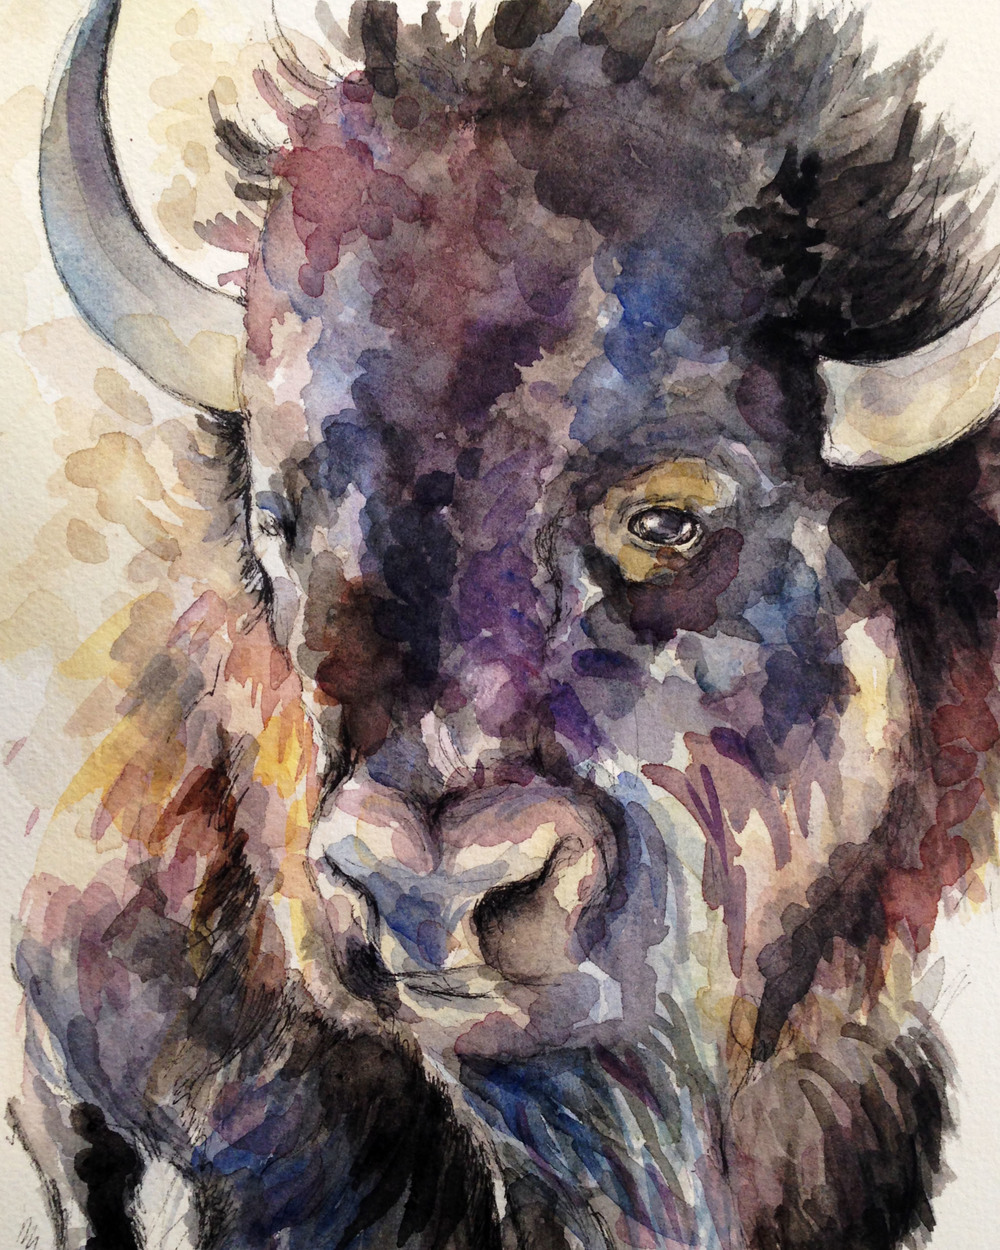 Bison Head (ORIGINAL SOLD)